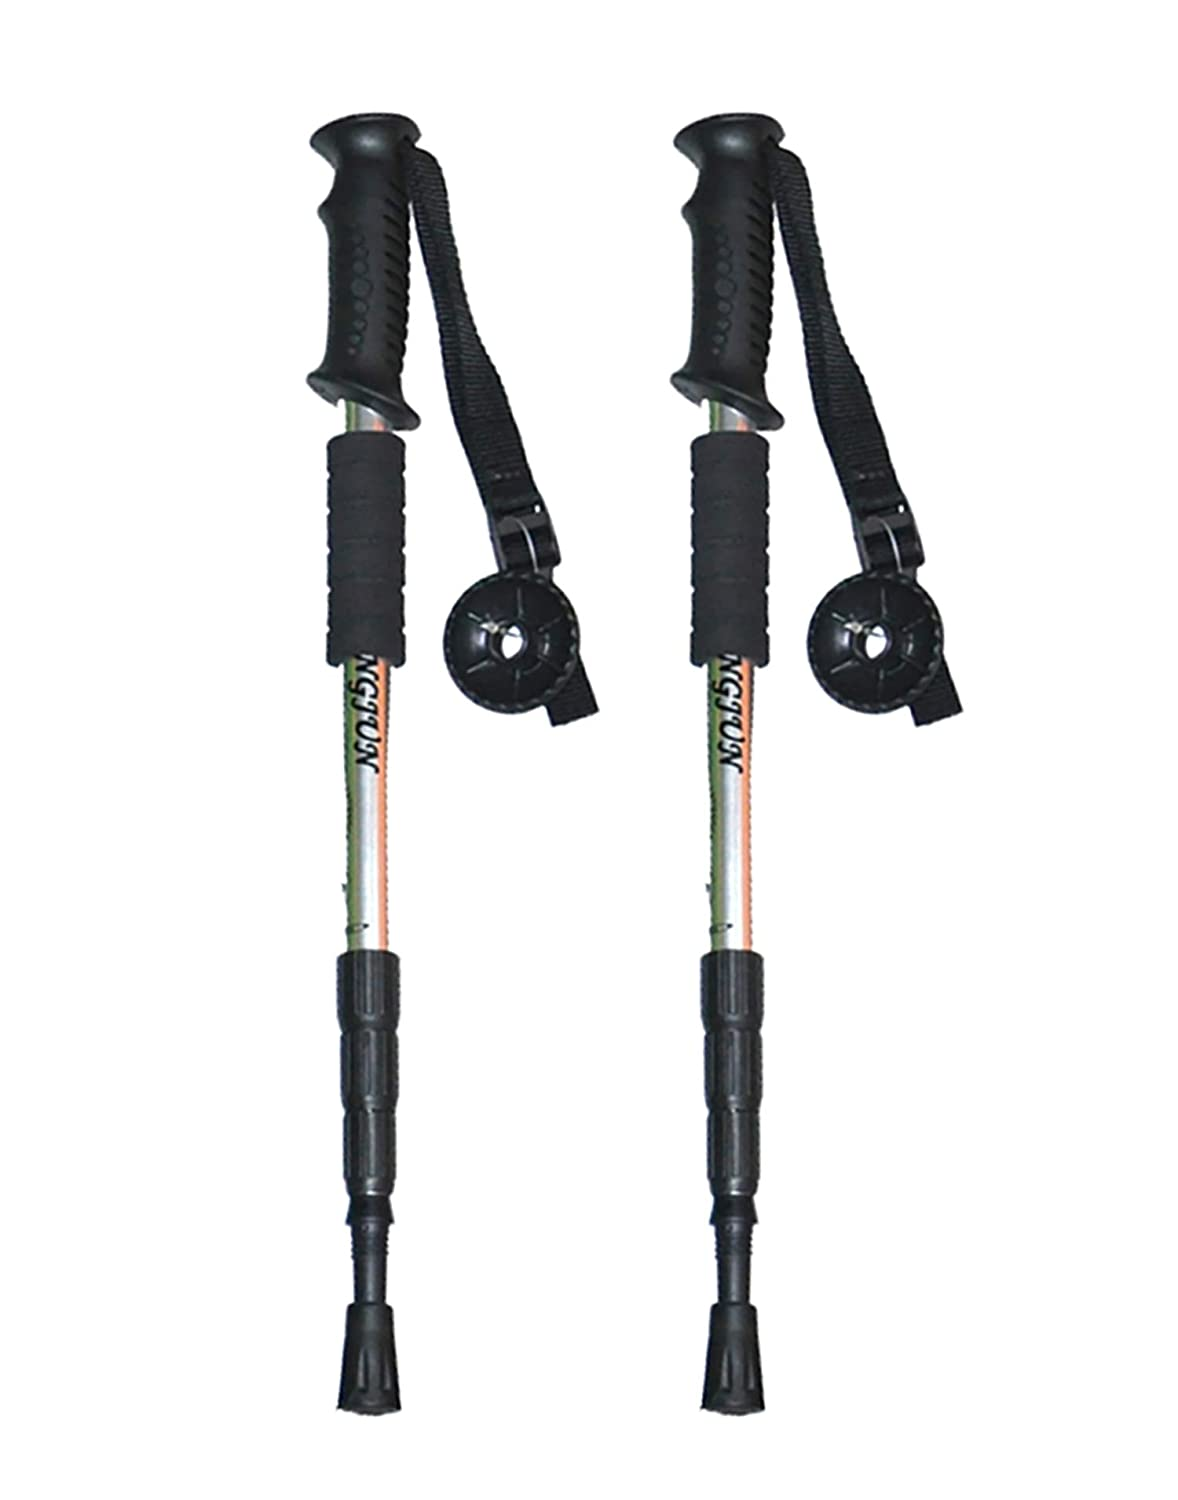 Trekking Poles Collapsible Lightweight Anti-Shock Walking Hiking Sticks Pair for Womens Mens Trek